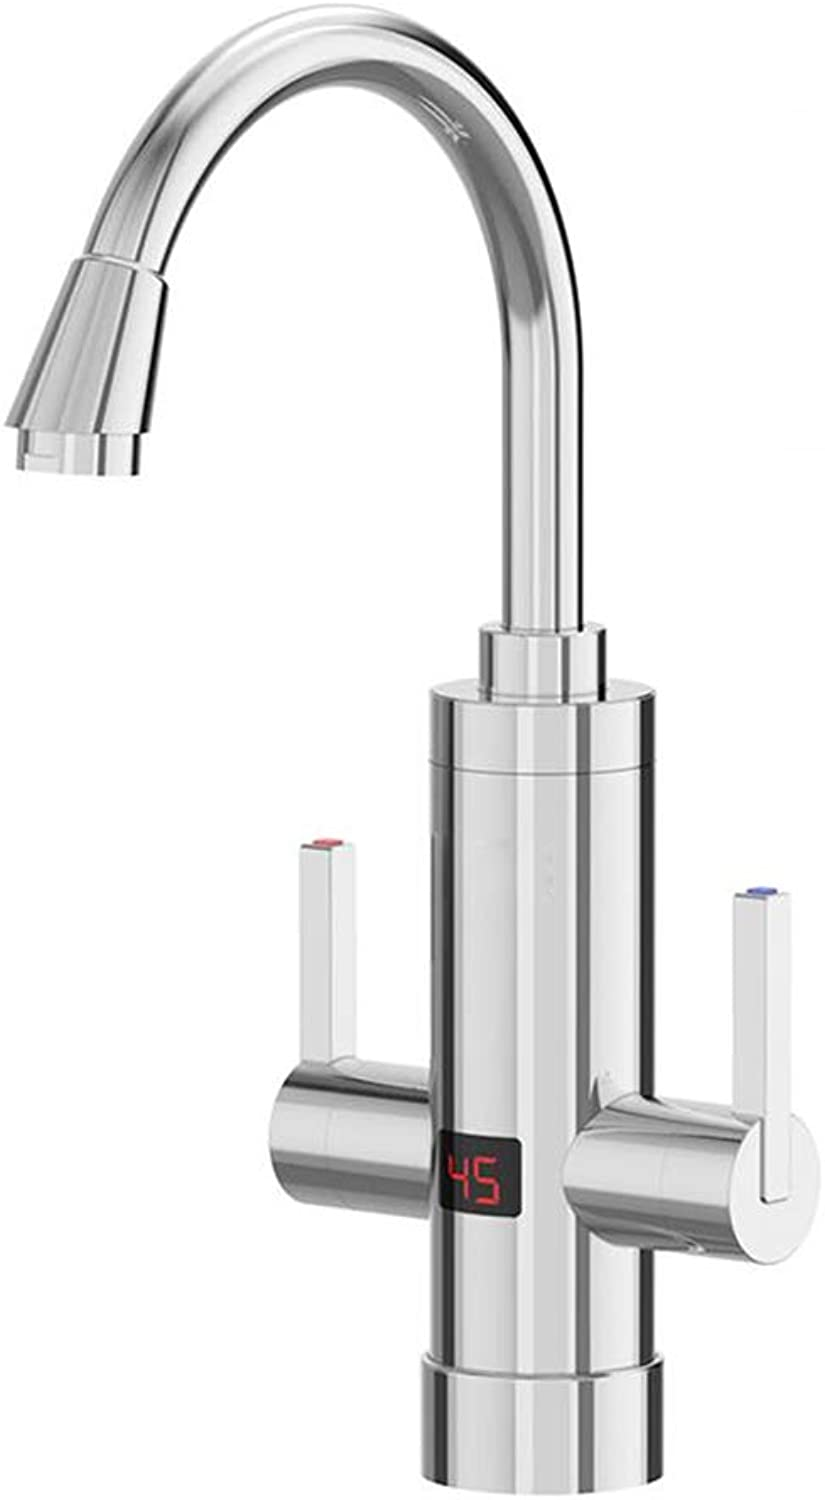 WHYDIANPU 360-degree redating electric faucet, quick-heating and water heater kitchen household kitchen treasure Home faucet (color   Silver)